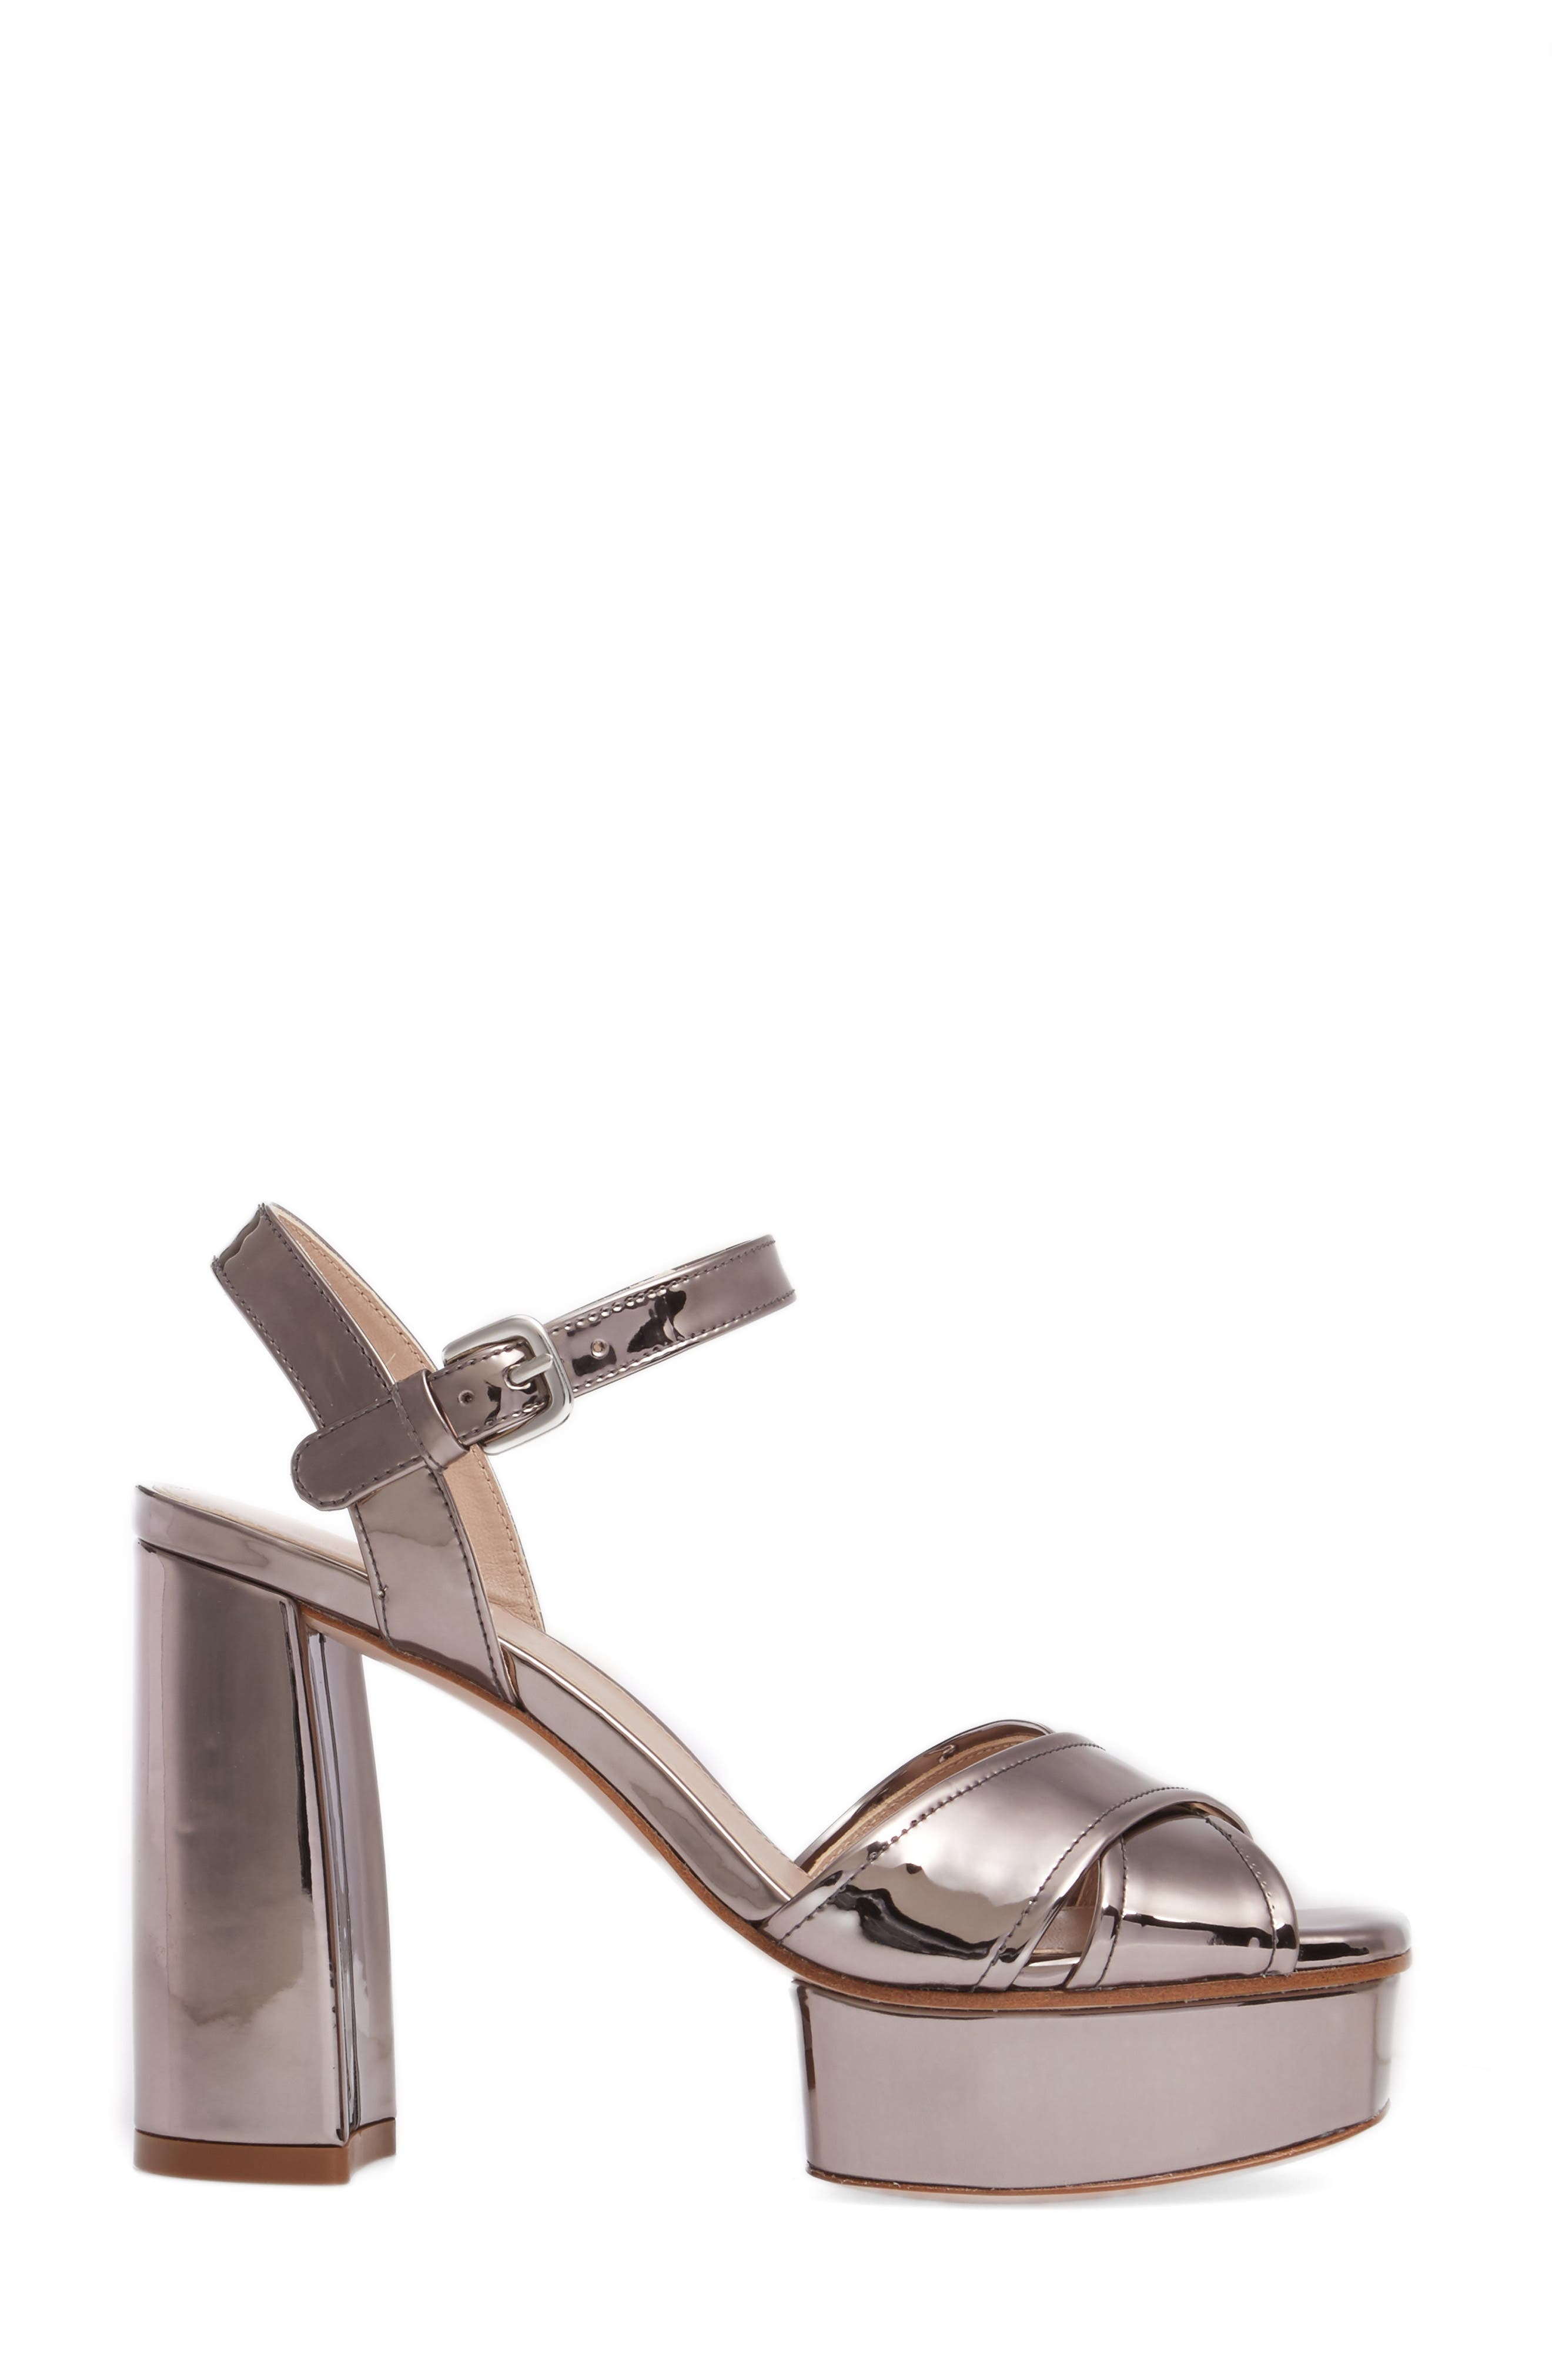 Exposed Platform Sandal,                             Alternate thumbnail 15, color,